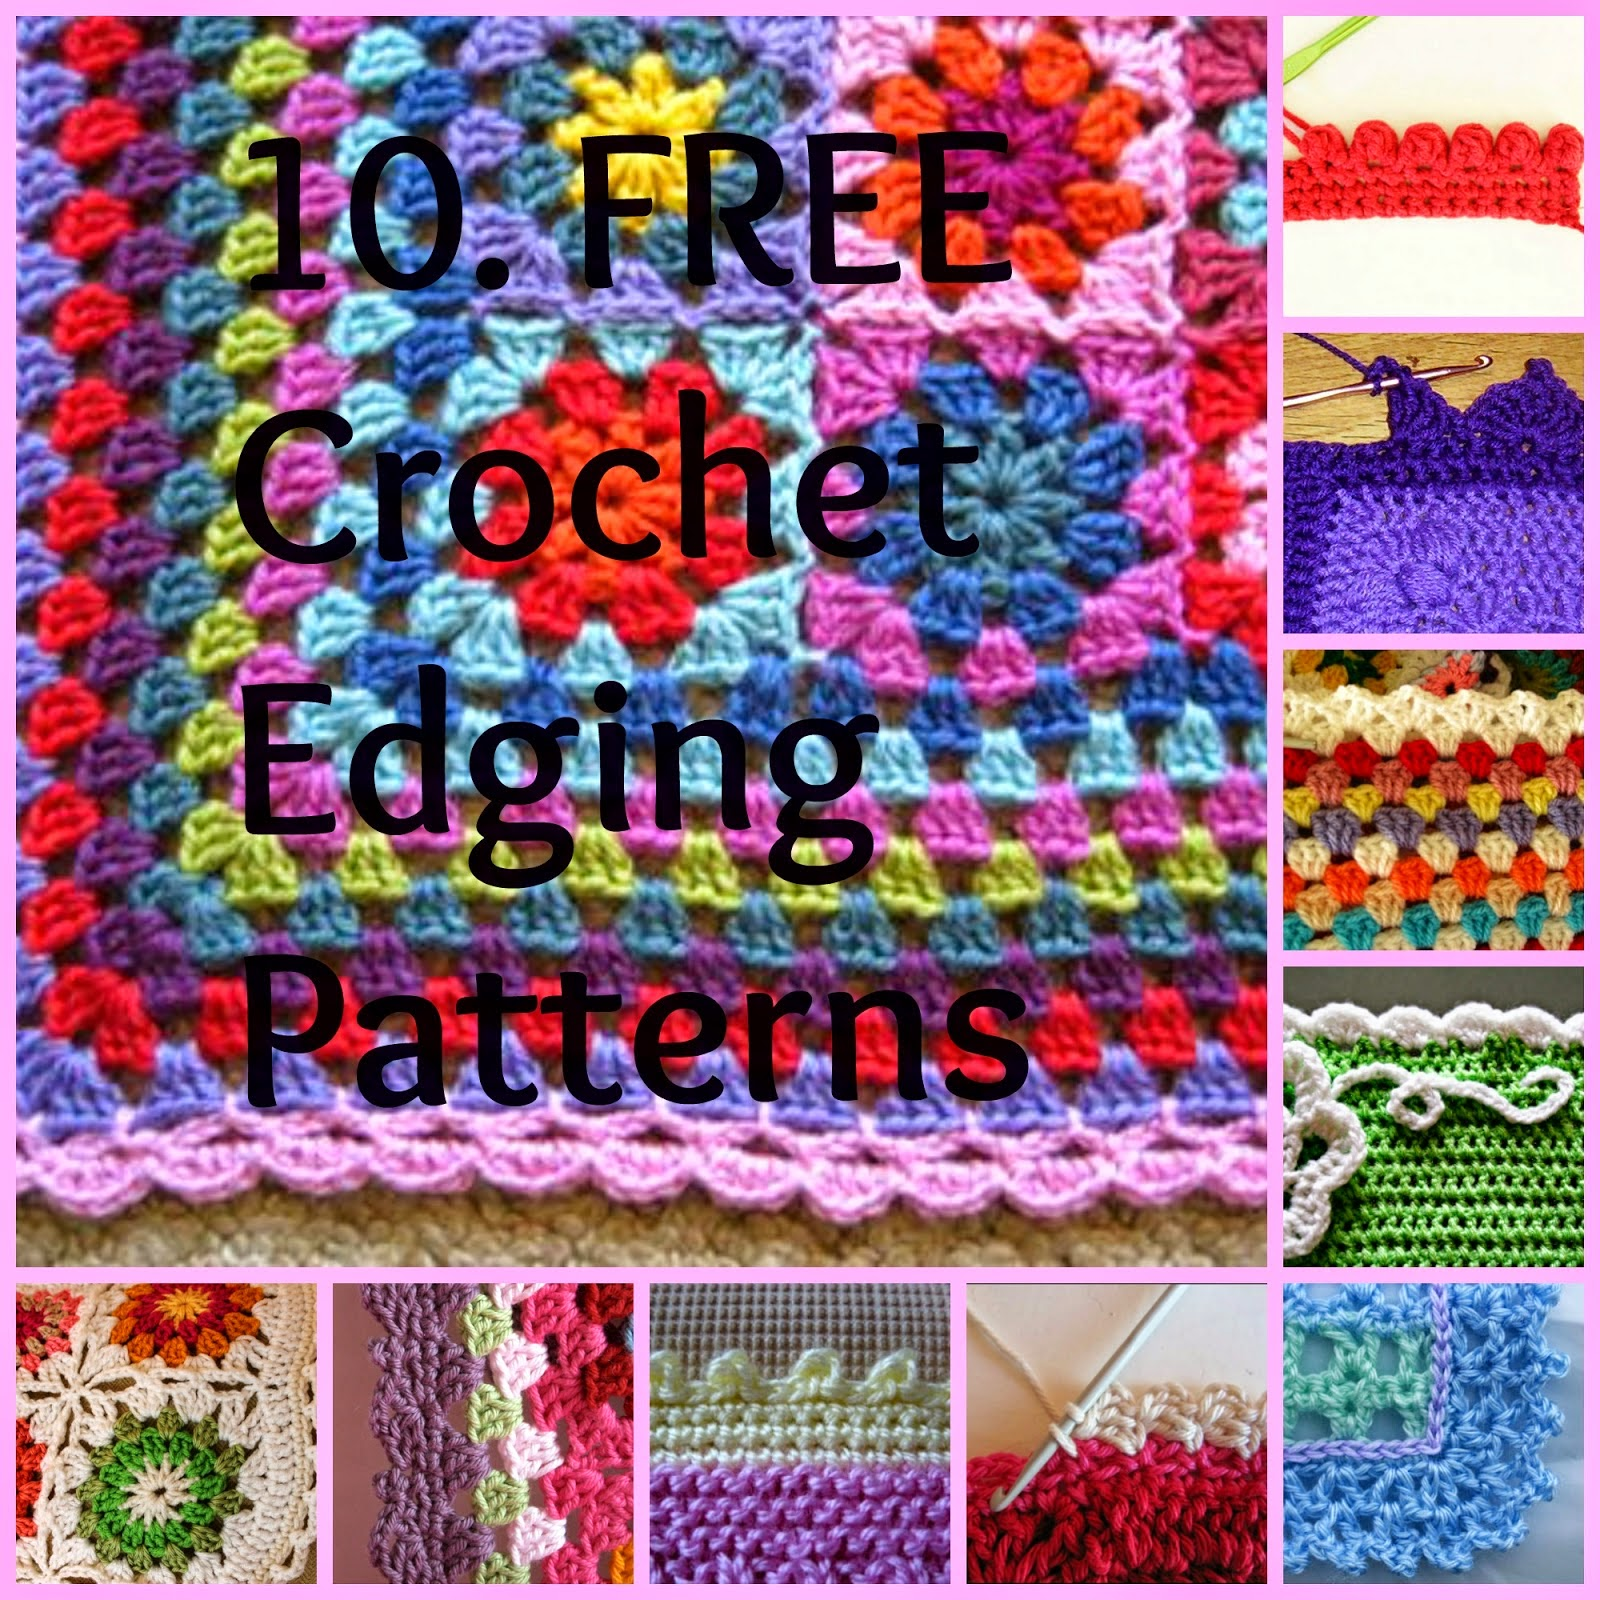 http://www.knotyournanascrochet.com/2013/04/10-ways-to-get-perfect-finish-on-your.html